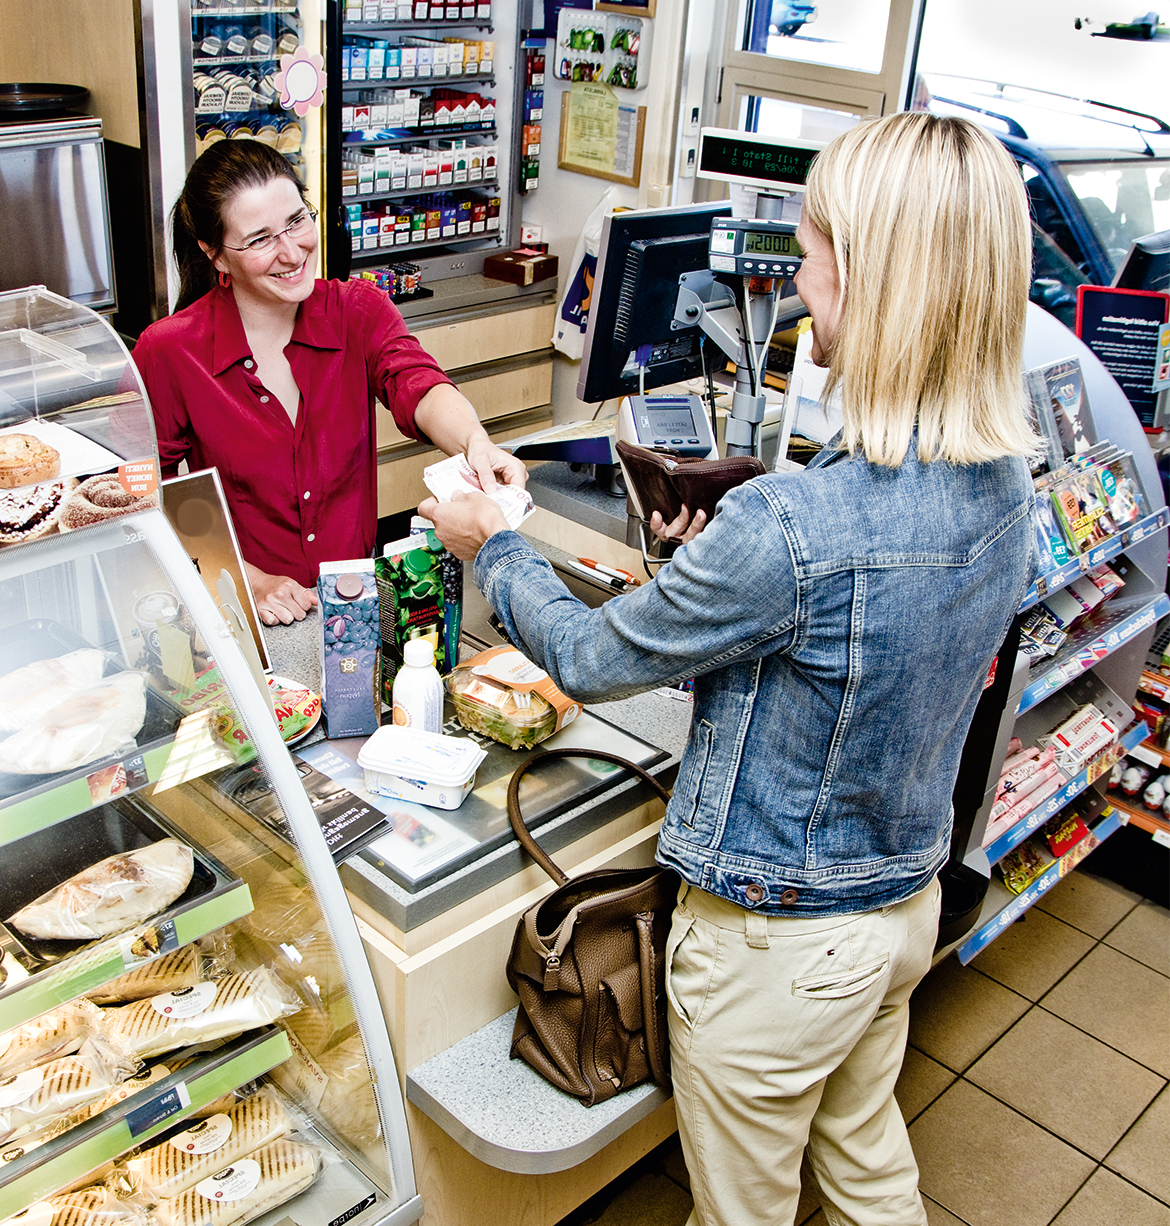 Transaction in convenience store